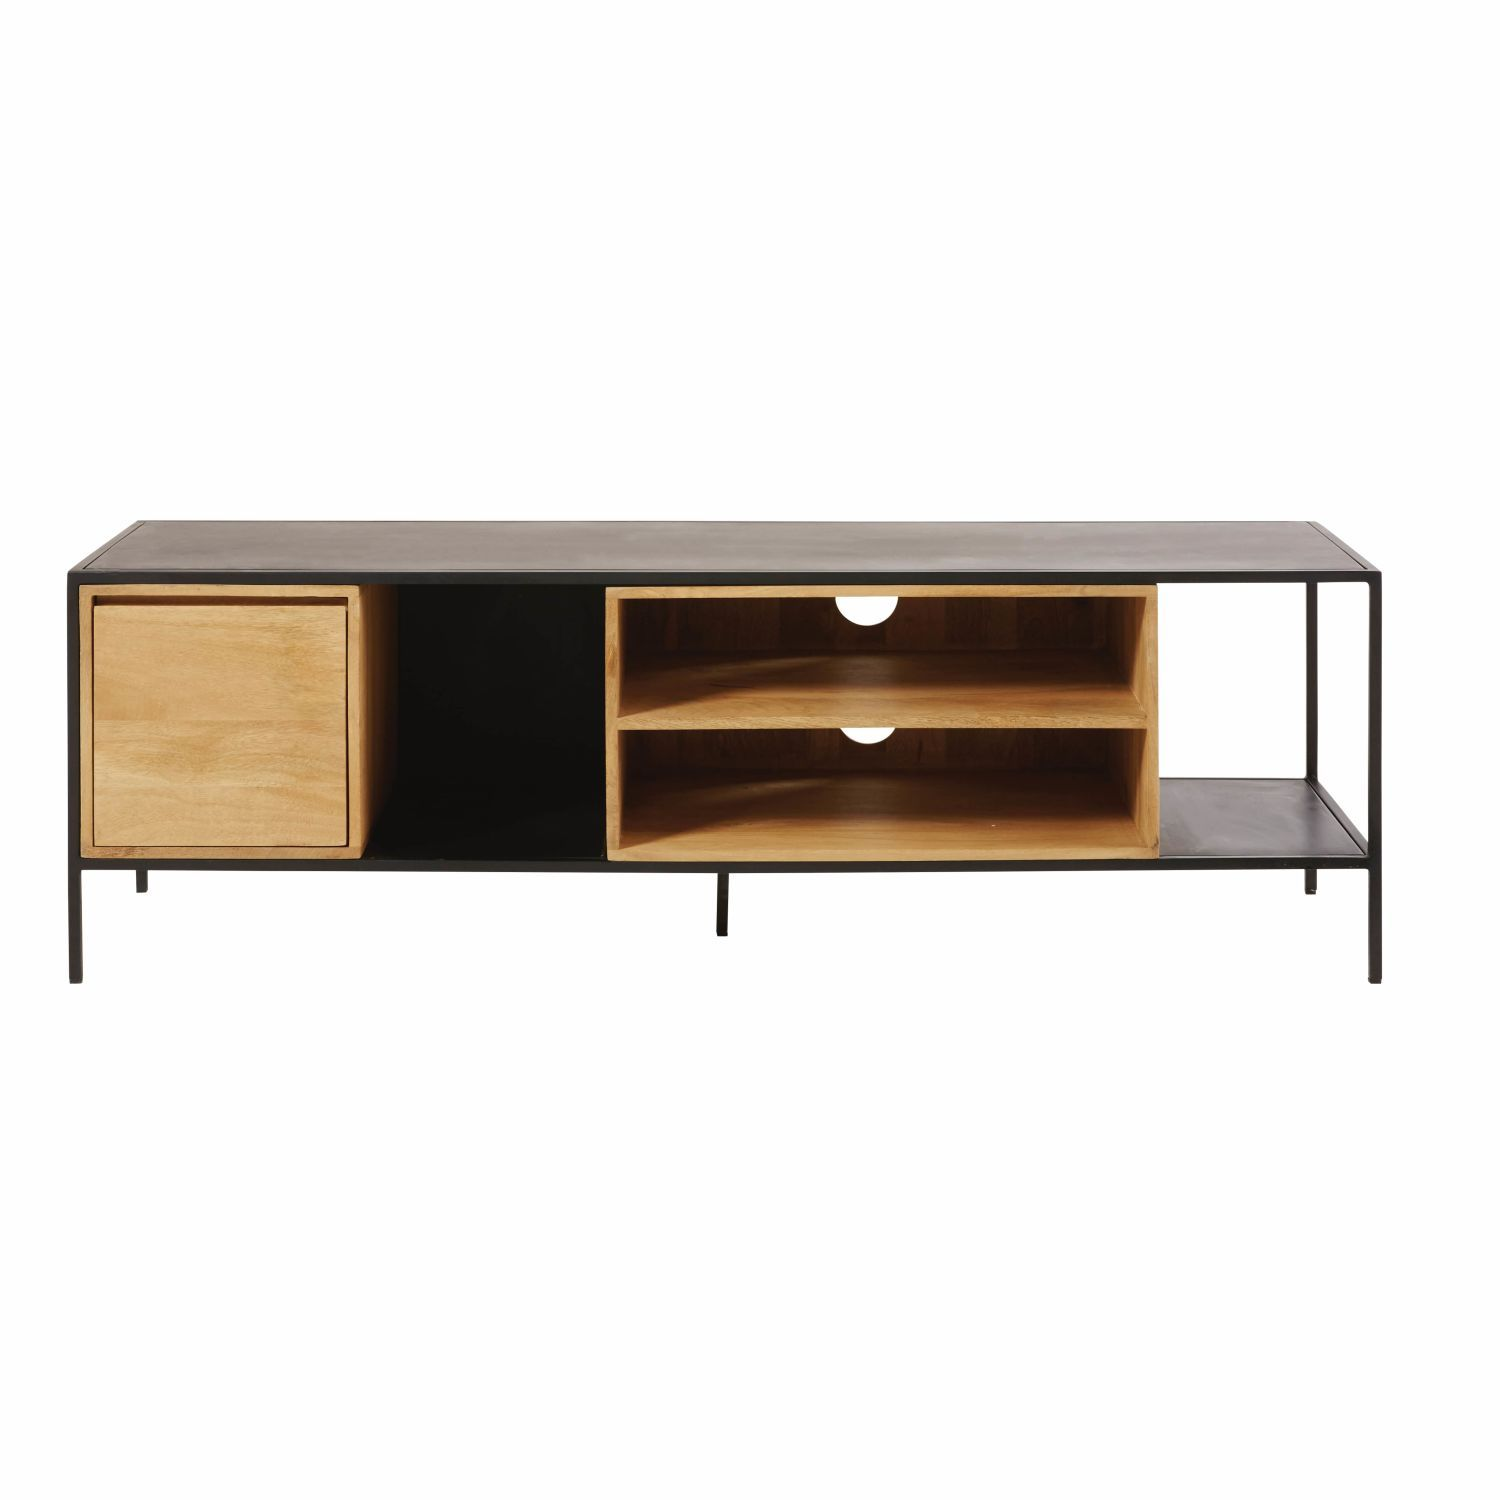 Tv Meubel Break.Solid Mango Wood And Black Metal 1 Door Tv Cabinet In 2020 Tv